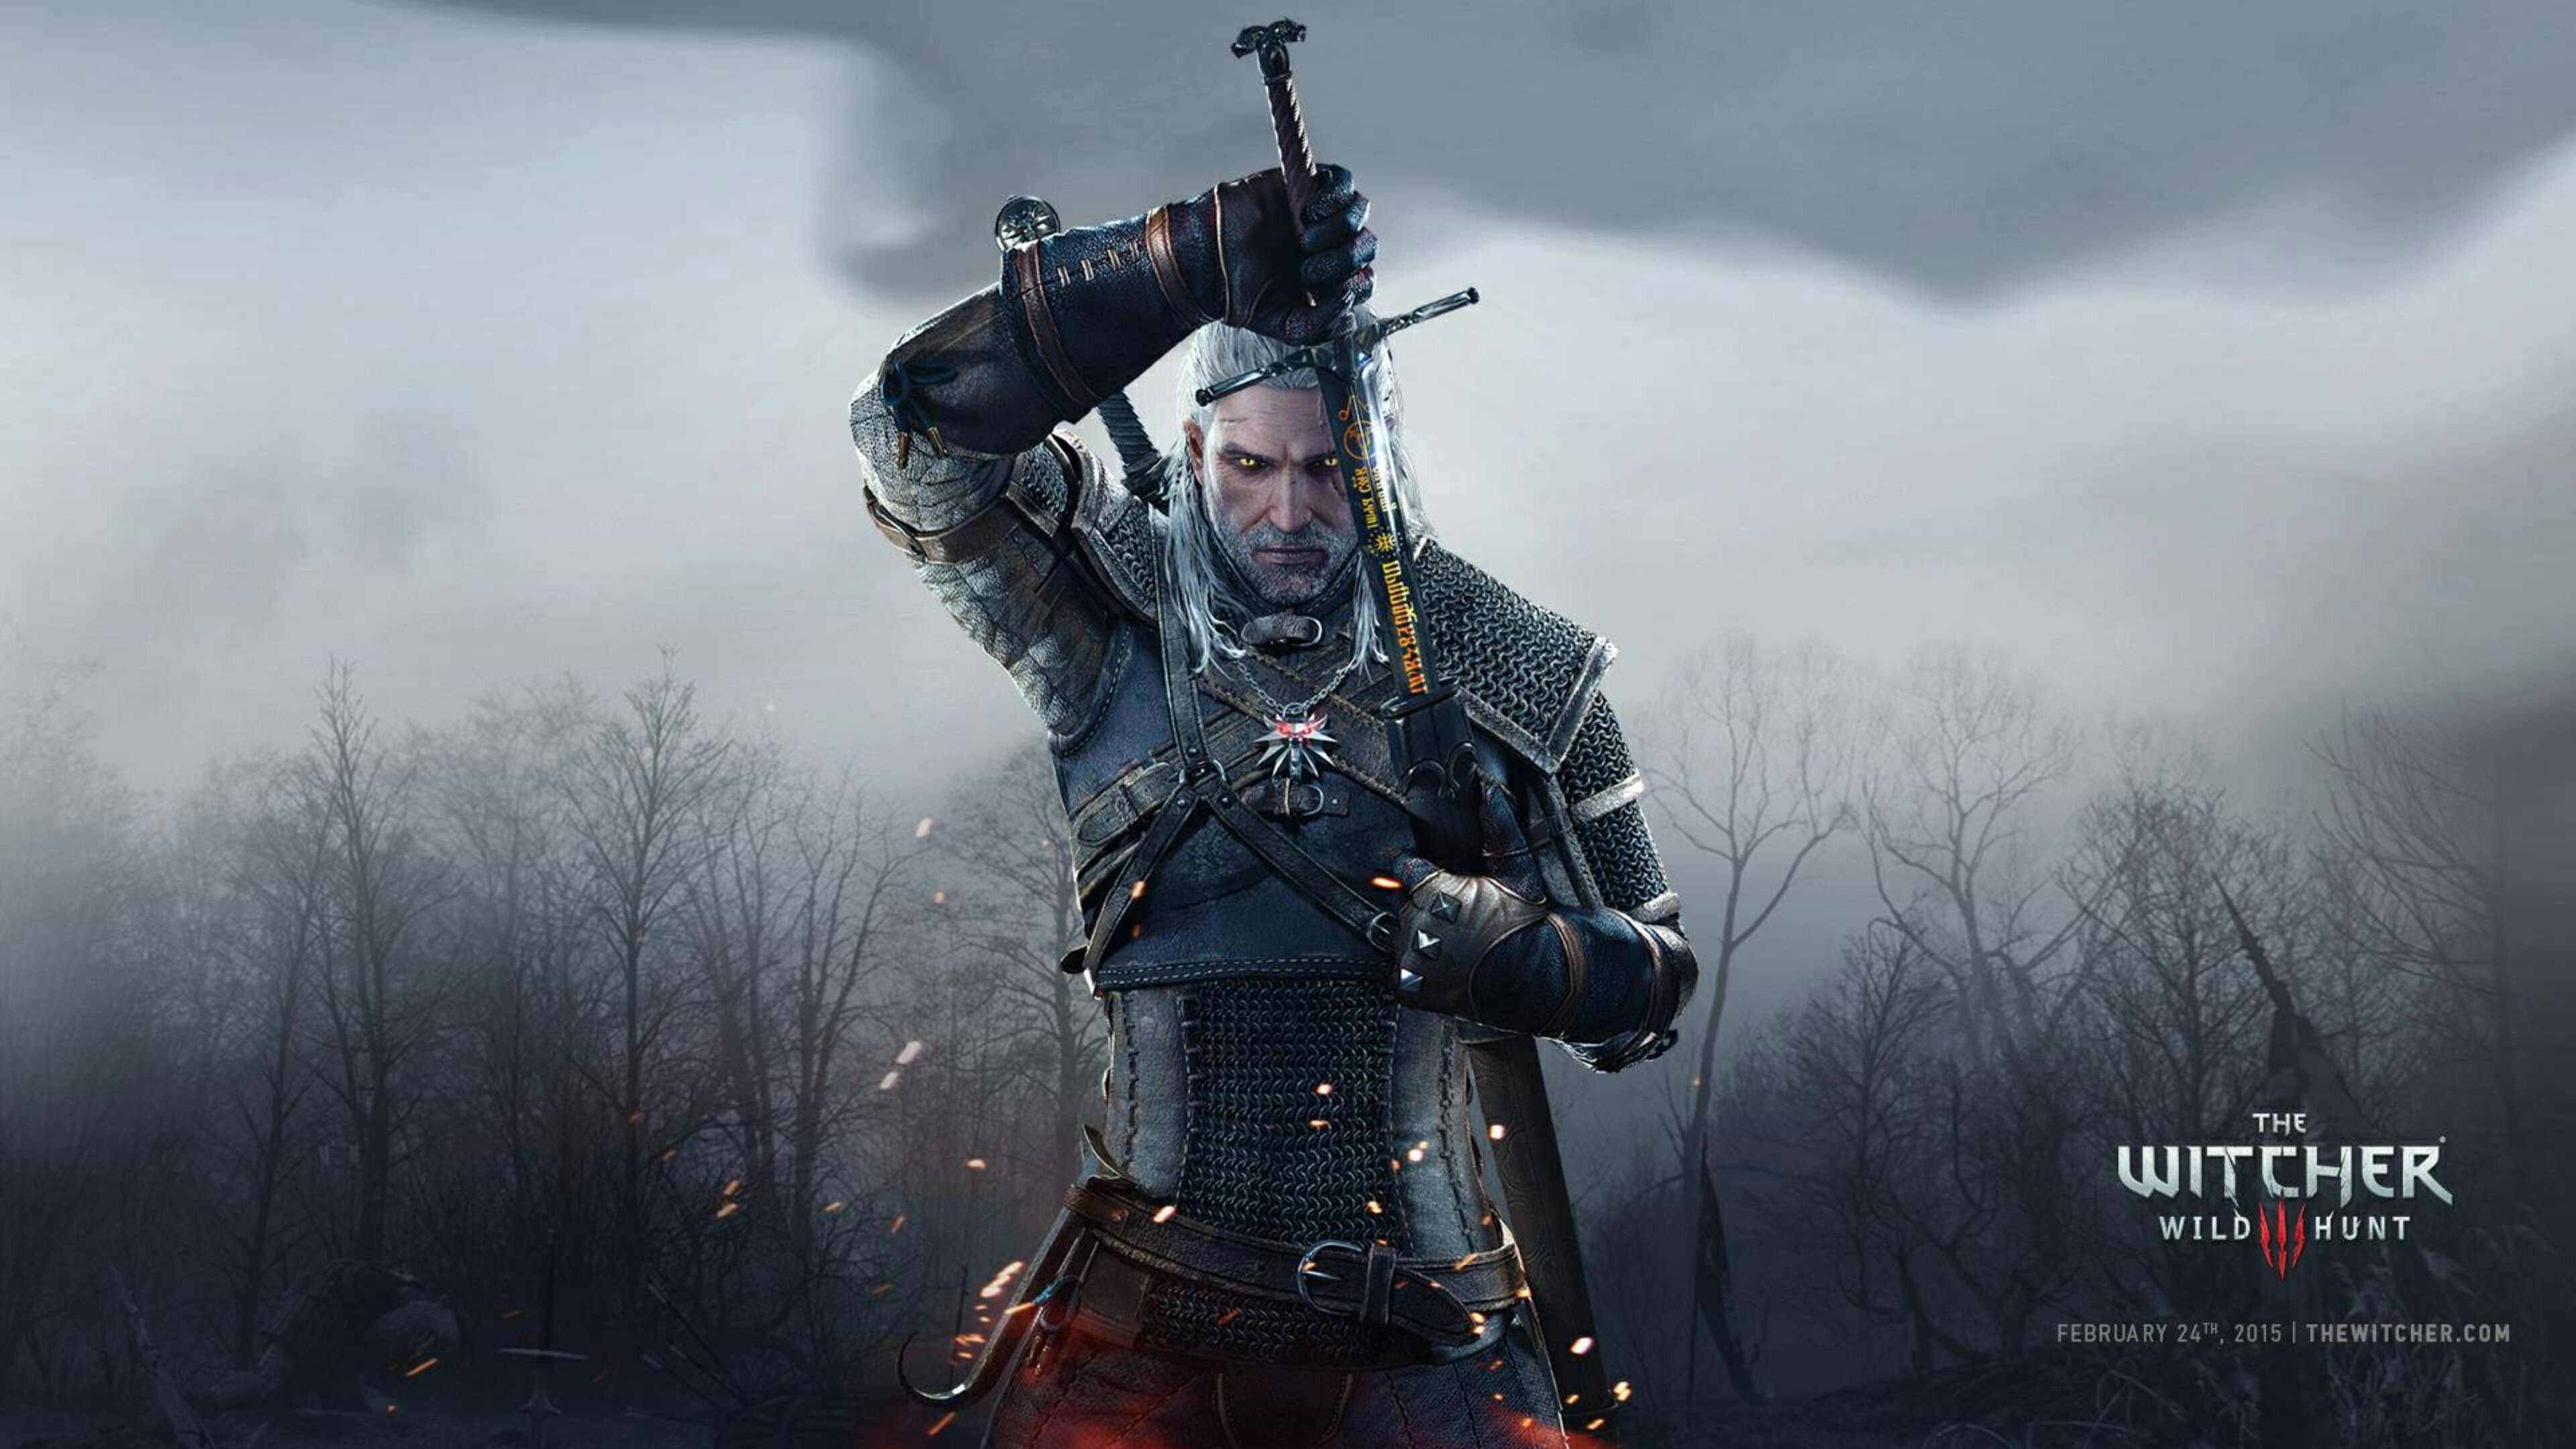 3840x2160 Some 4k witcher 3 wallpapers. by Awesomeflubkin via AndroidJul 17 2016. Load 6